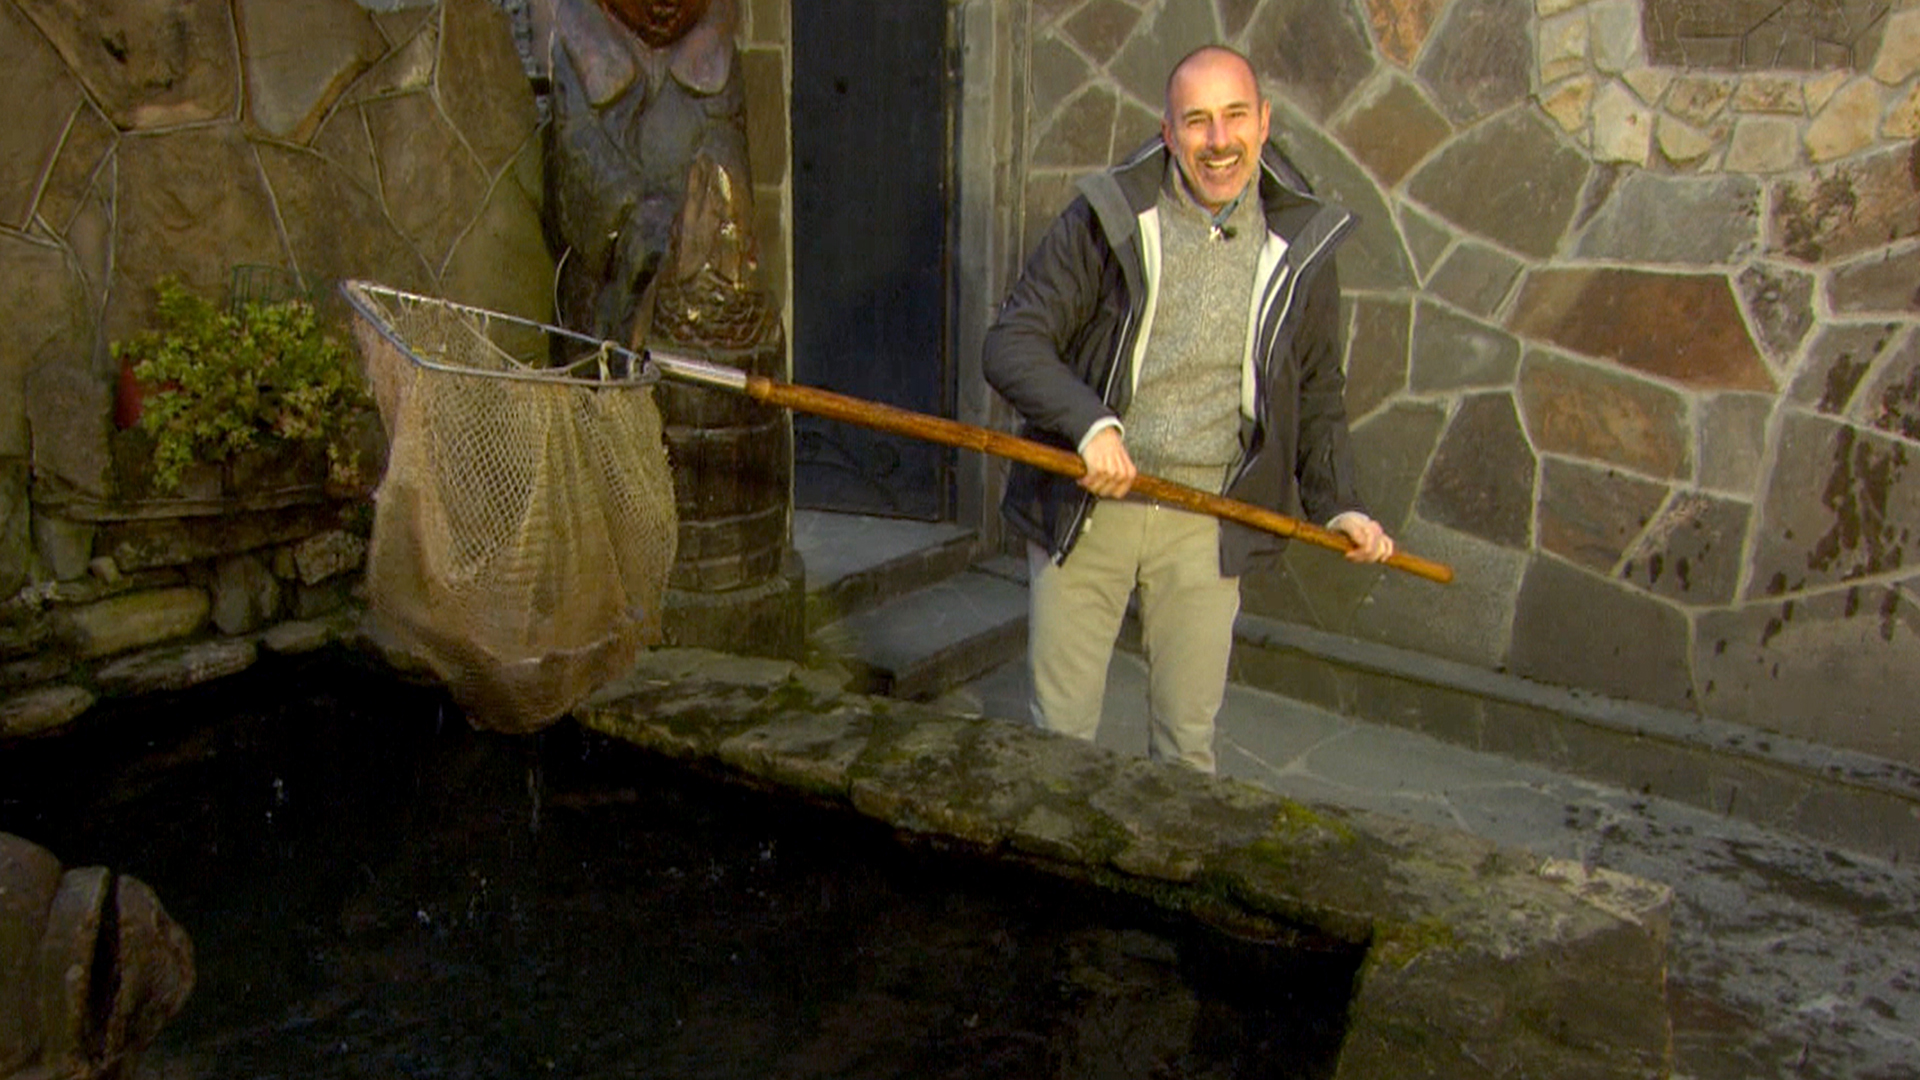 Lauer goes fishing for his dinner in sochi for How is fishing today